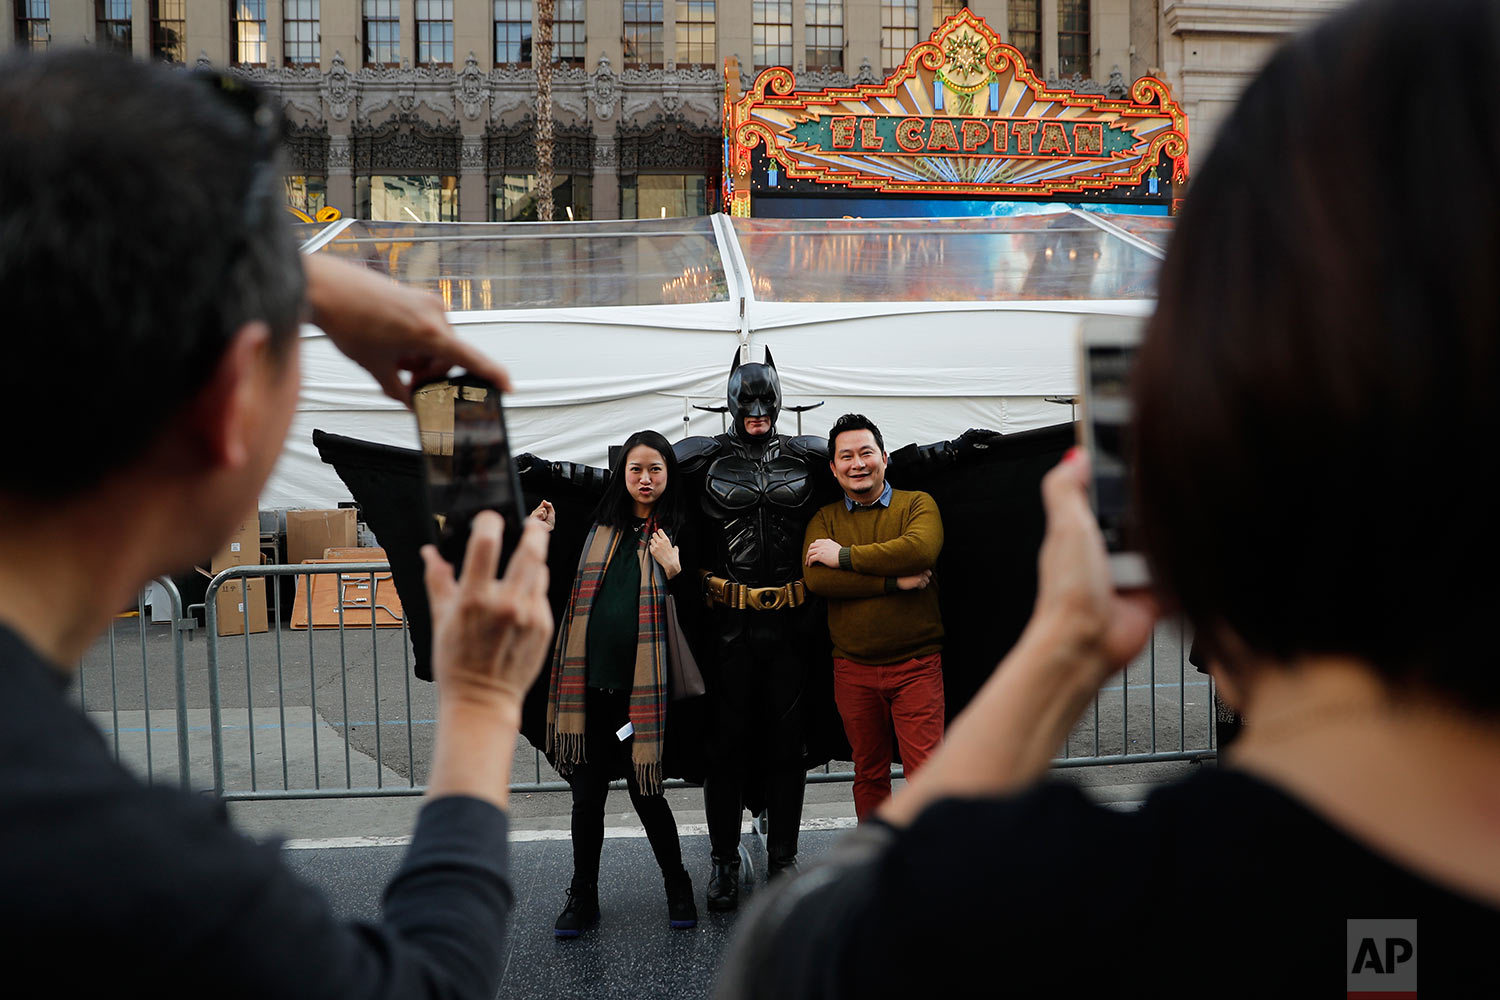 "In this Thursday, March 2, 2017 photo, superhero impersonator Matthias Balke poses with tourists on Hollywood Boulevard near the Dolby Theatre in Los Angeles. The screenwriter-producer-actor, who put $3,000 into his elaborate Batman ensemble, said he doesn't grab tourists or crack a joke to get their attention. Instead, he waits for them to come to him. ""My way of soliciting is the quality of my costume,"" he said. ""People see it, they come to me to ask me for a picture. I'd never walk up to anybody."" (AP Photo/Jae C. Hong)"